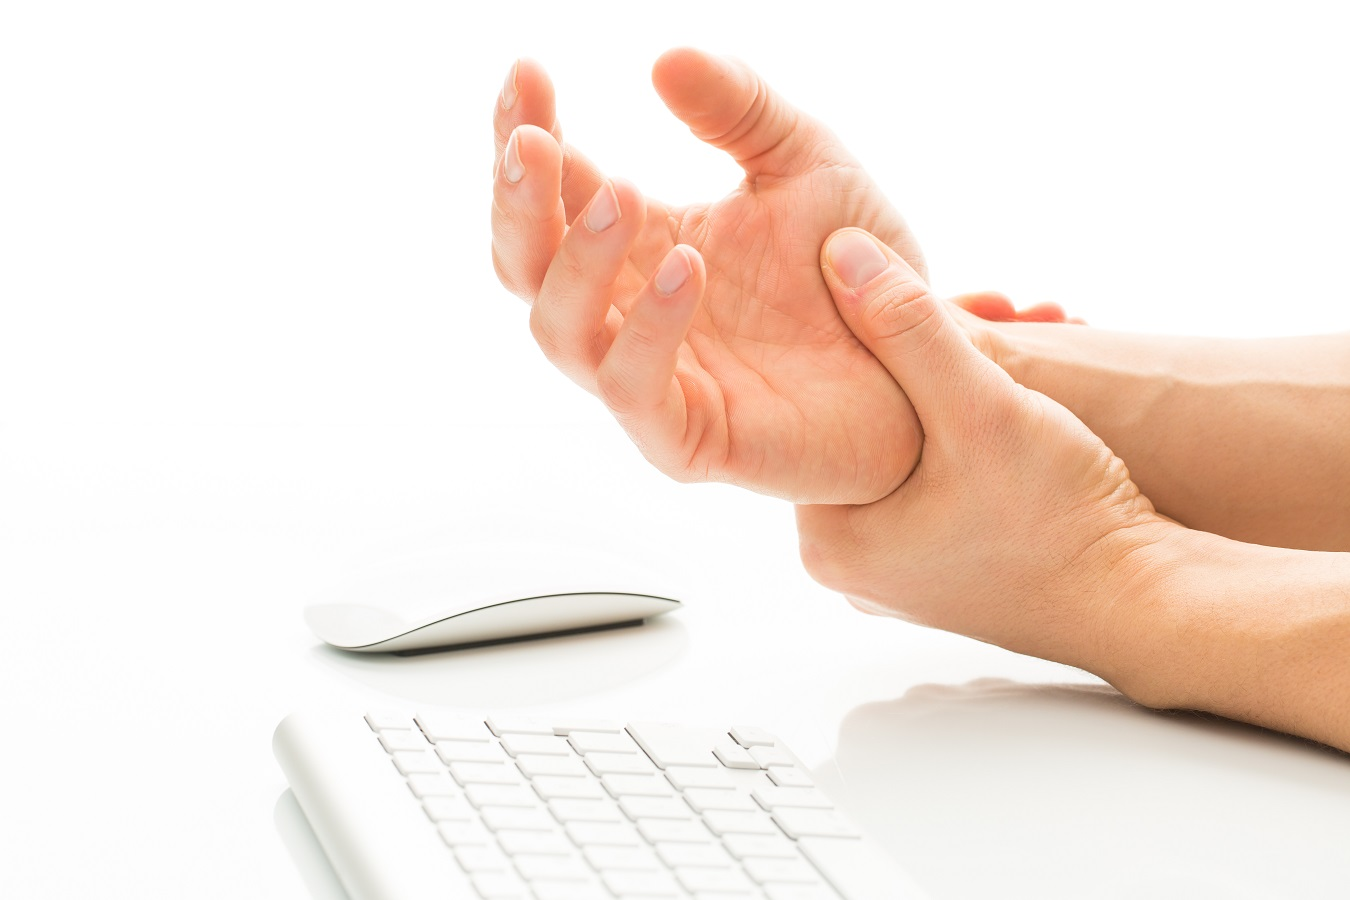 What is Carpal Tunnel Release? - Incisionless, ultrasound-guided Carpal Tunnel